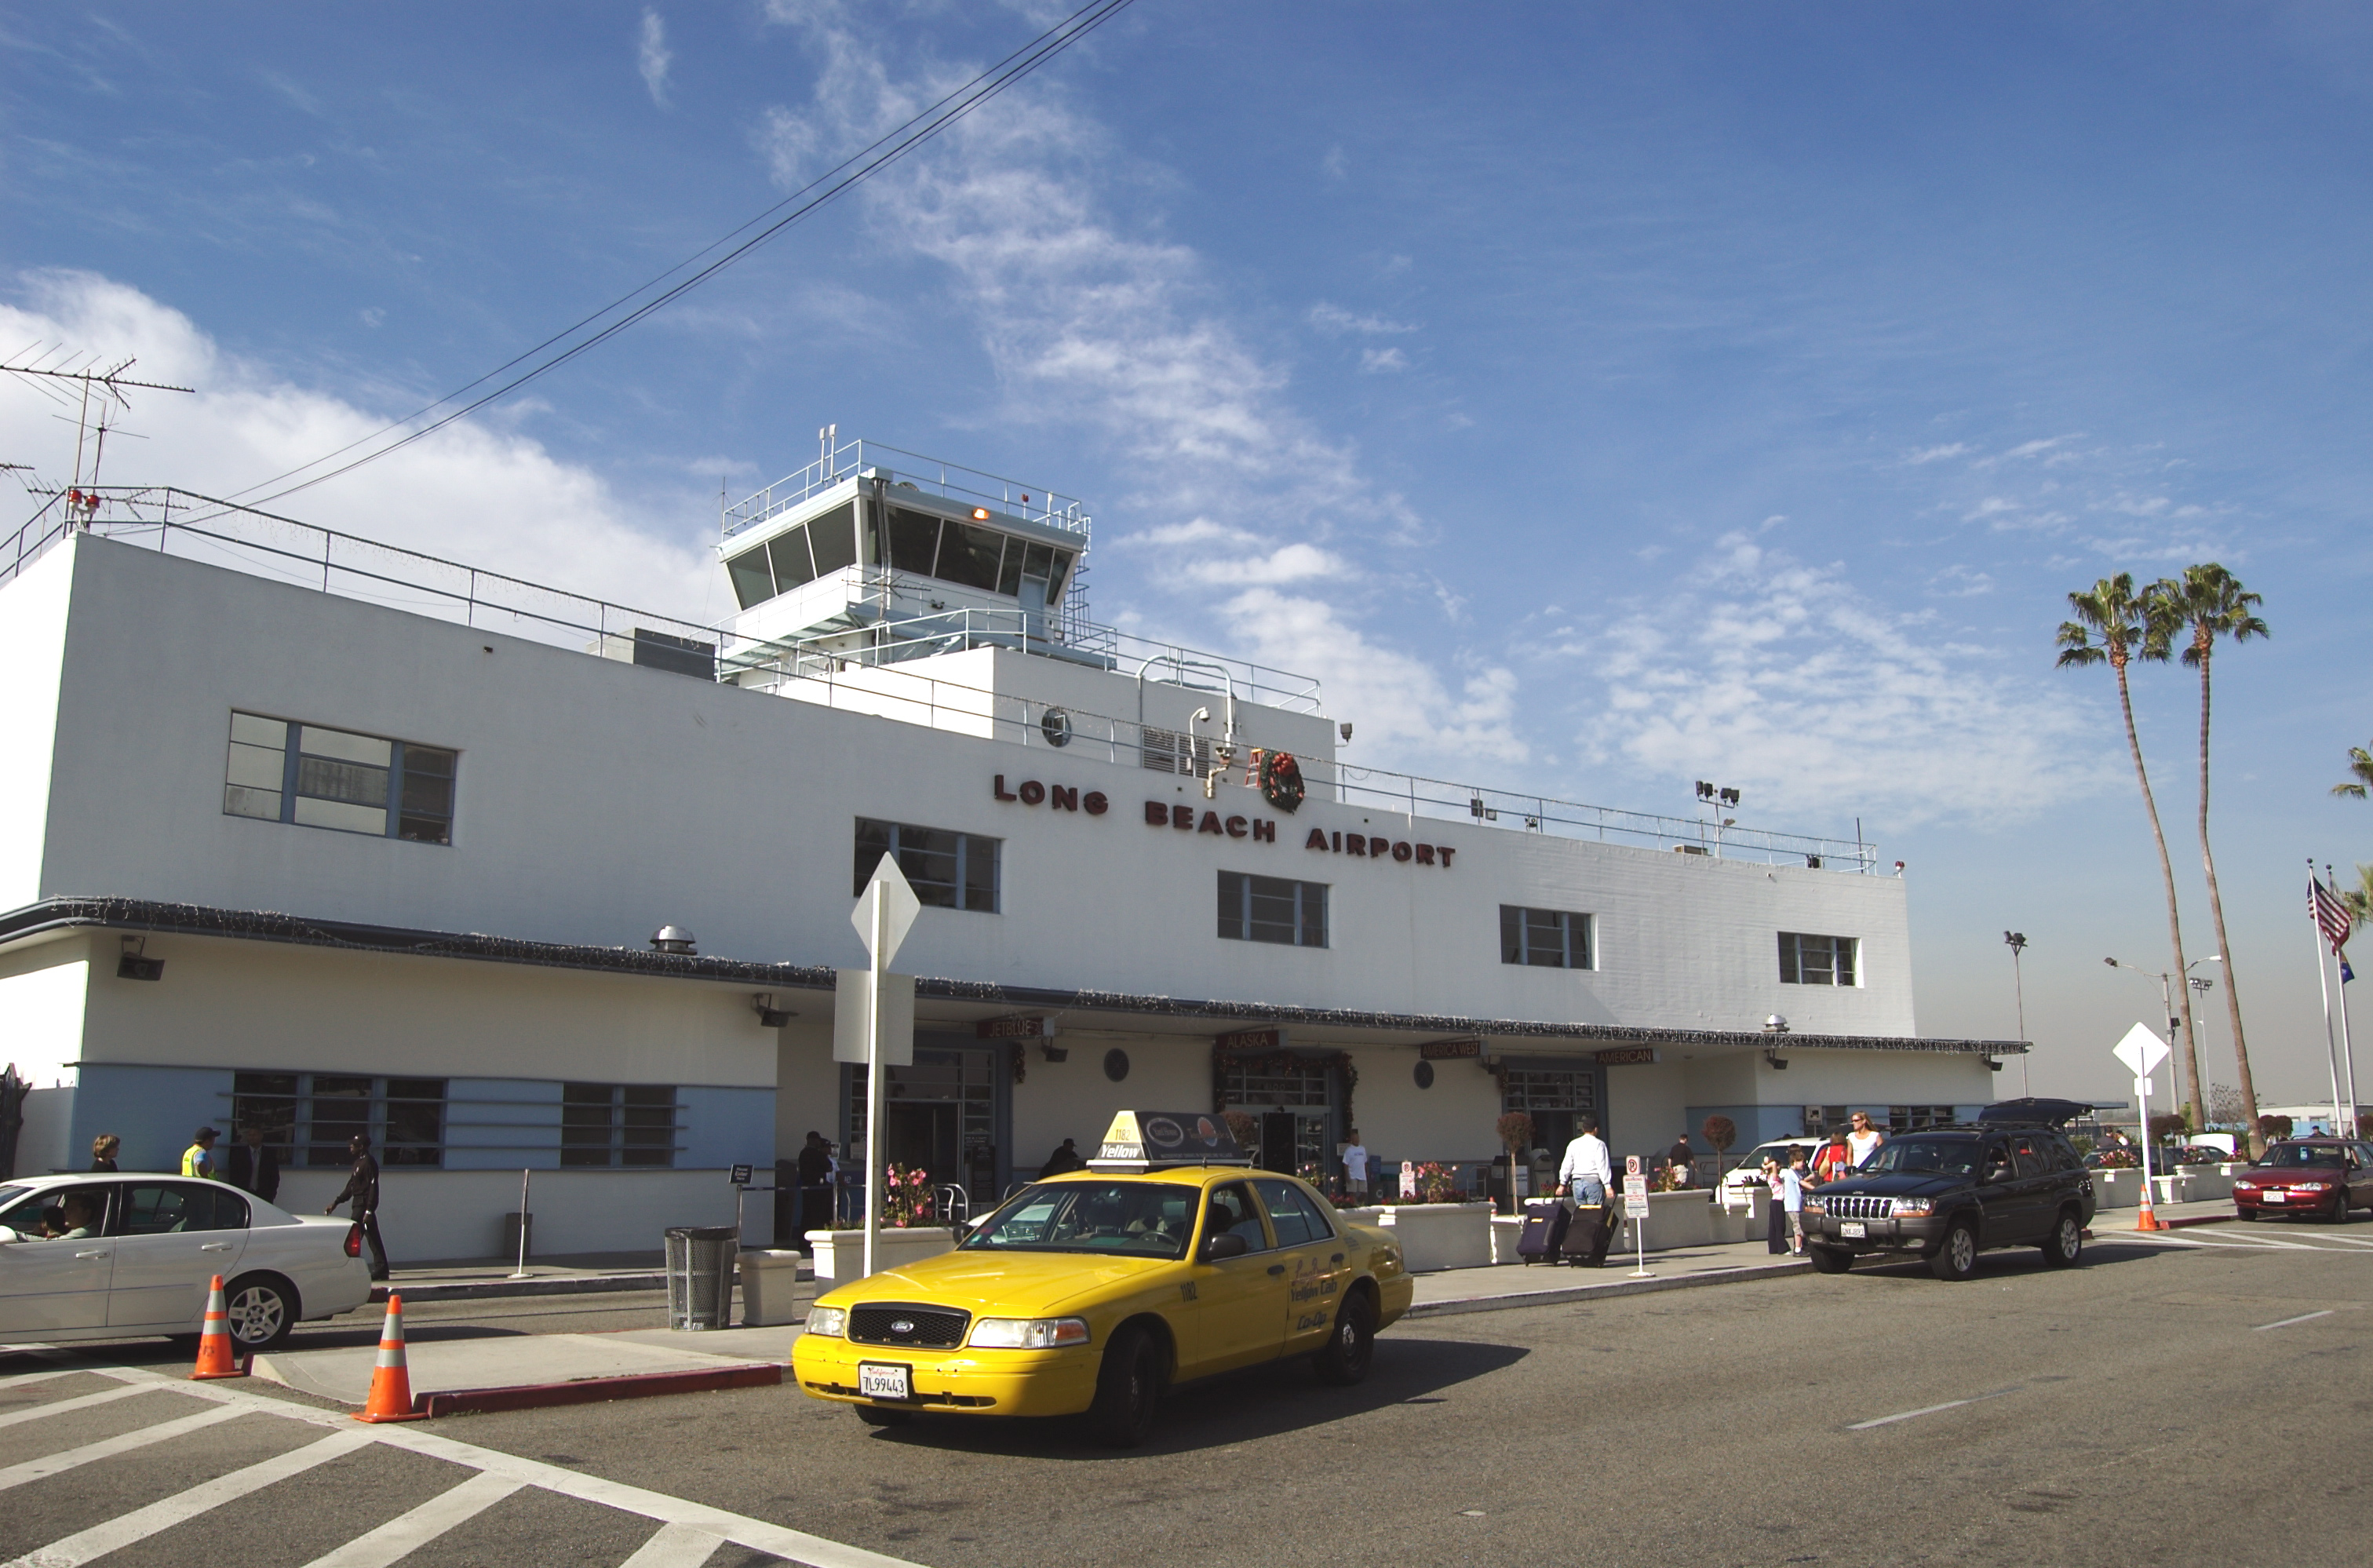 Long Beach Airport To San Diego